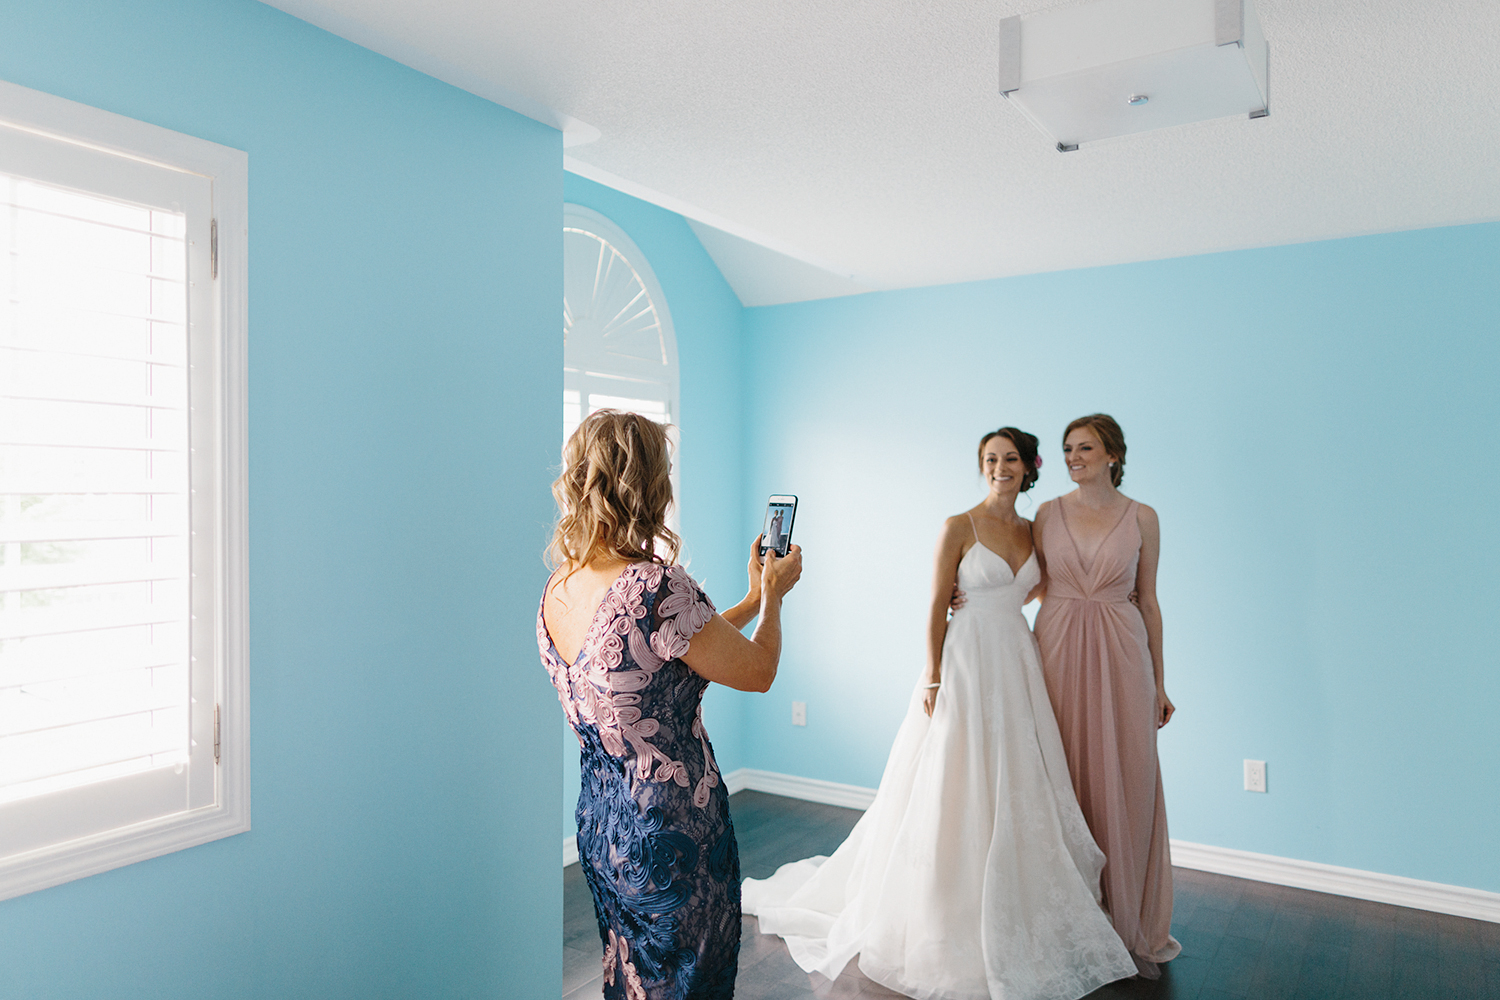 Best-Toronto-Wedding-Photographers-Photojournalistic-Wedding-Photography-in-Toronto-Ryanne-Hollies-Photography-candid-documentary-bradford-newmarket-bride-getting-ready-lea-ann-belter-bridal-mom-helping-with-dress-moments-taking-photos.jpg